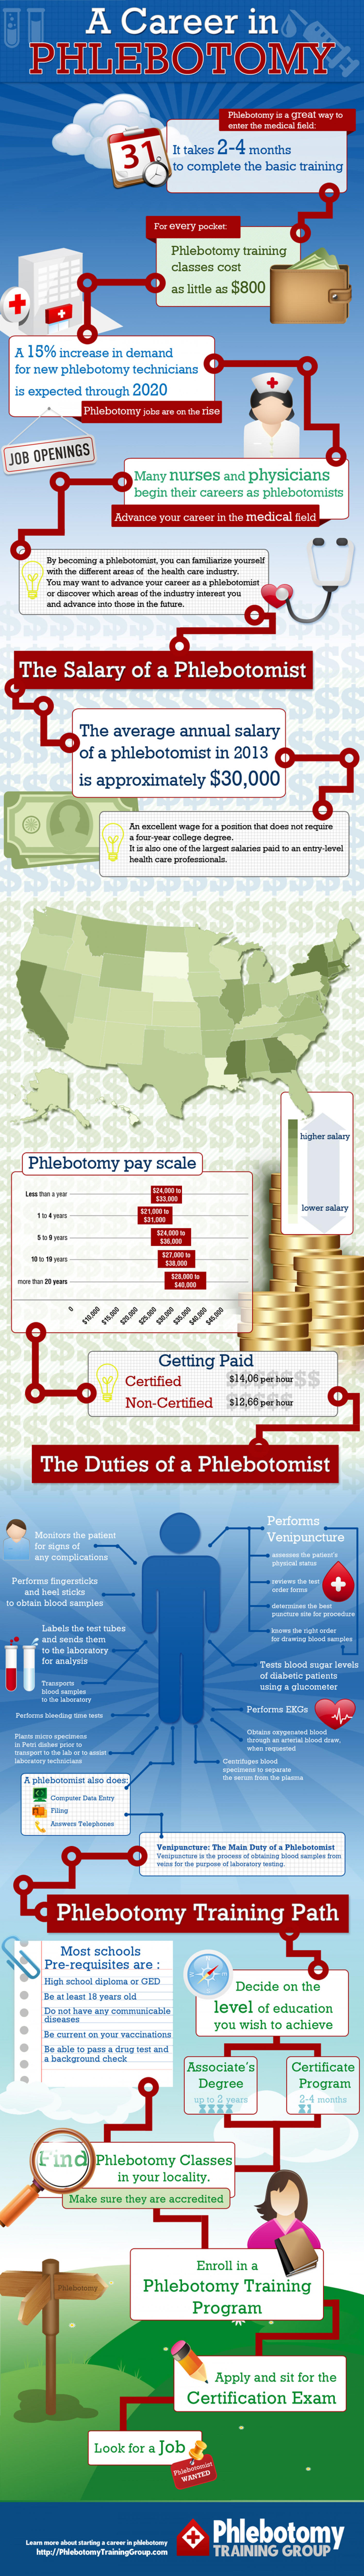 Infographic: A Career in Phlebotomy Infographic